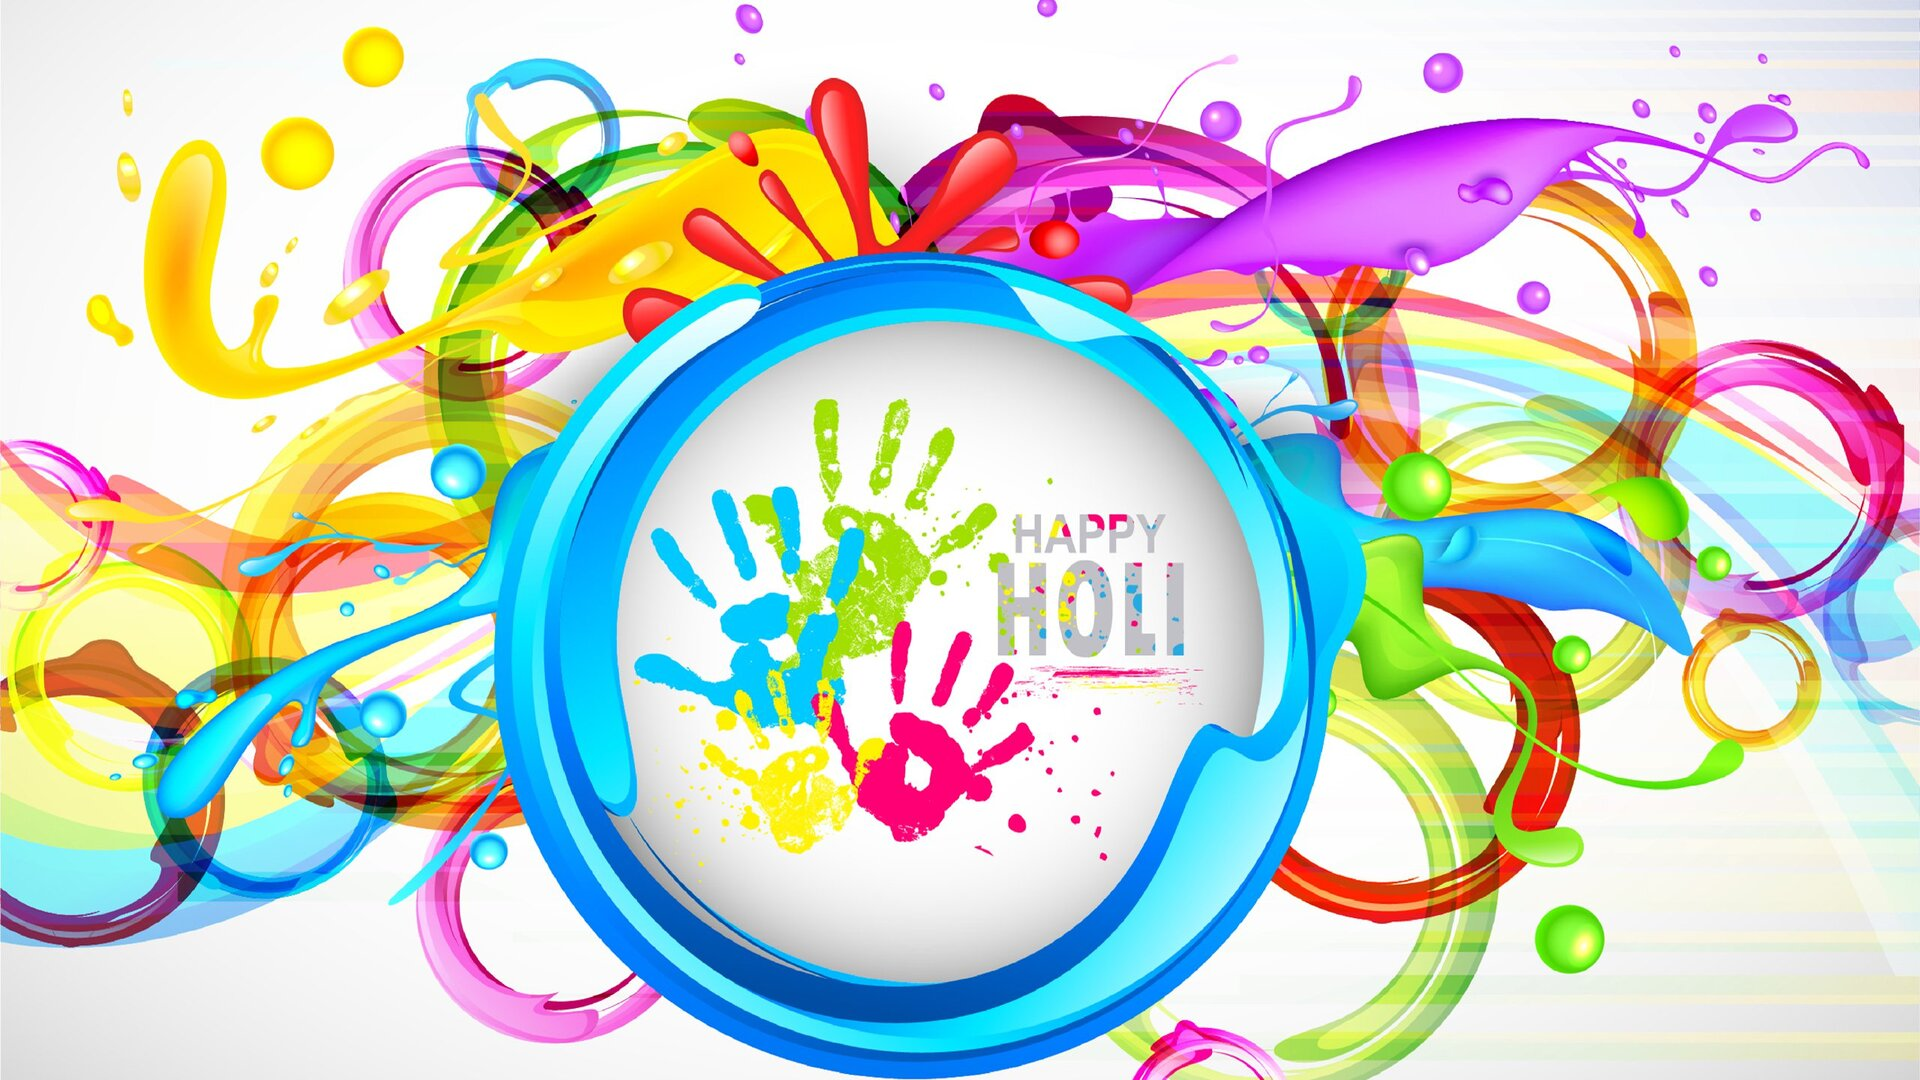 1920x1080 Happy Holi Images Laptop Full Hd 1080p Hd 4k Wallpapers